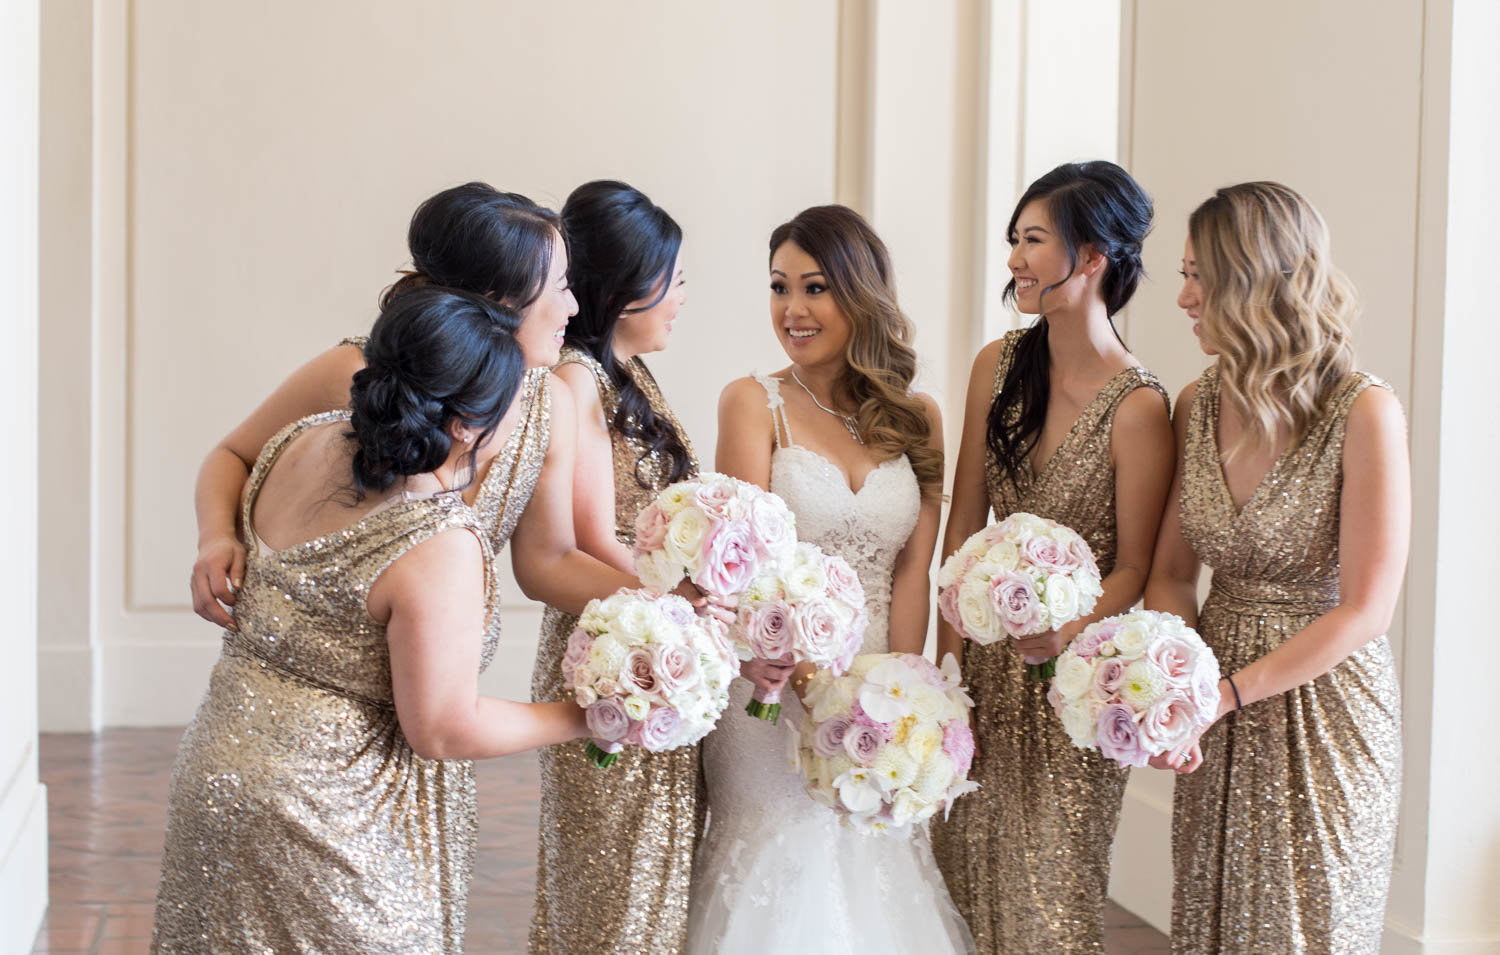 Pasadena-city-hall-Wedding-photos-by-kelly-h-photo